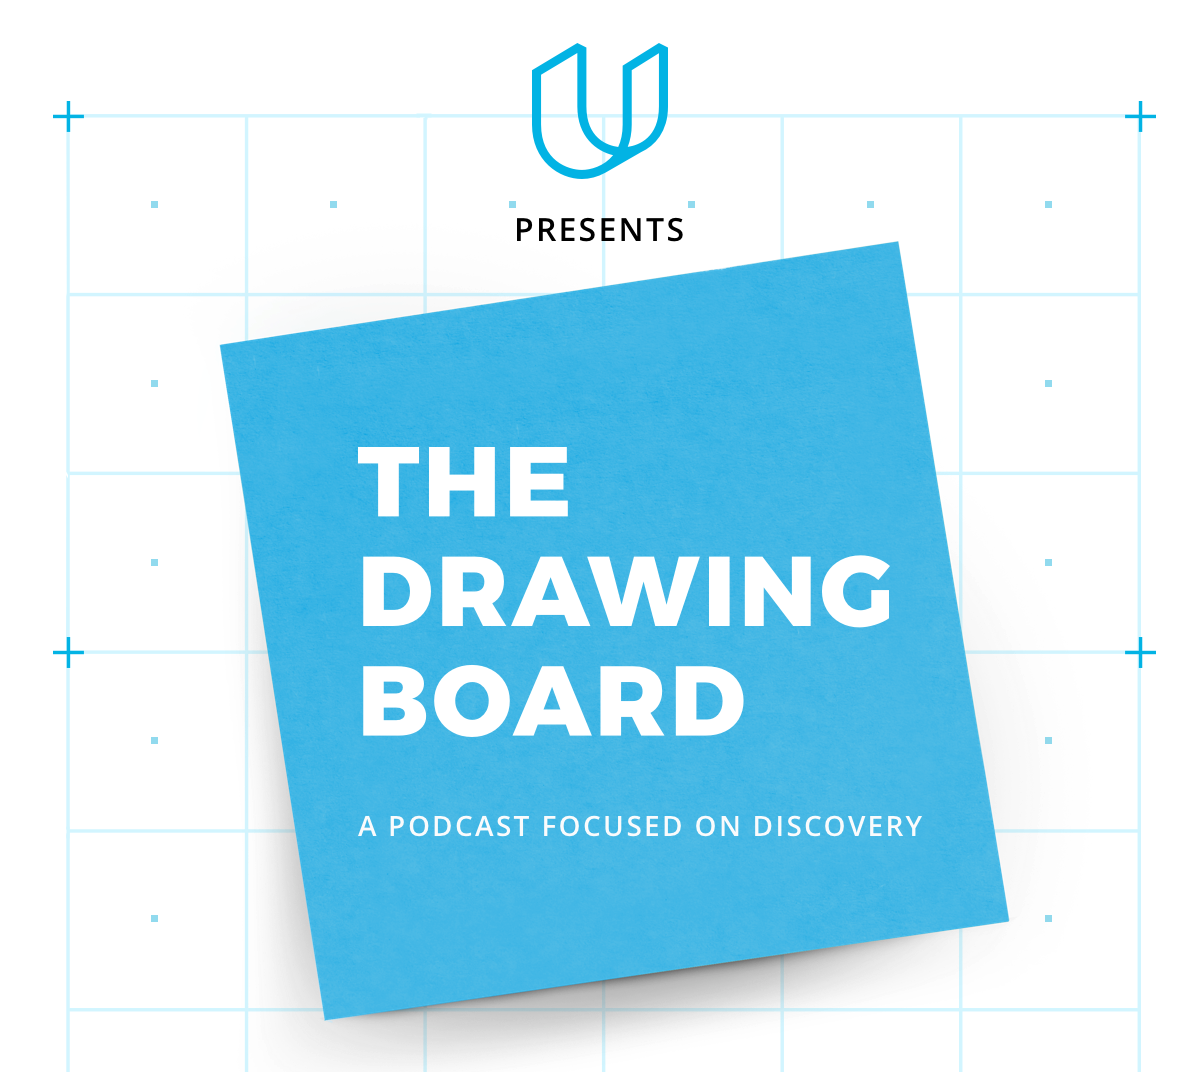 The Drawing Board - Udacity's New Podcast Series